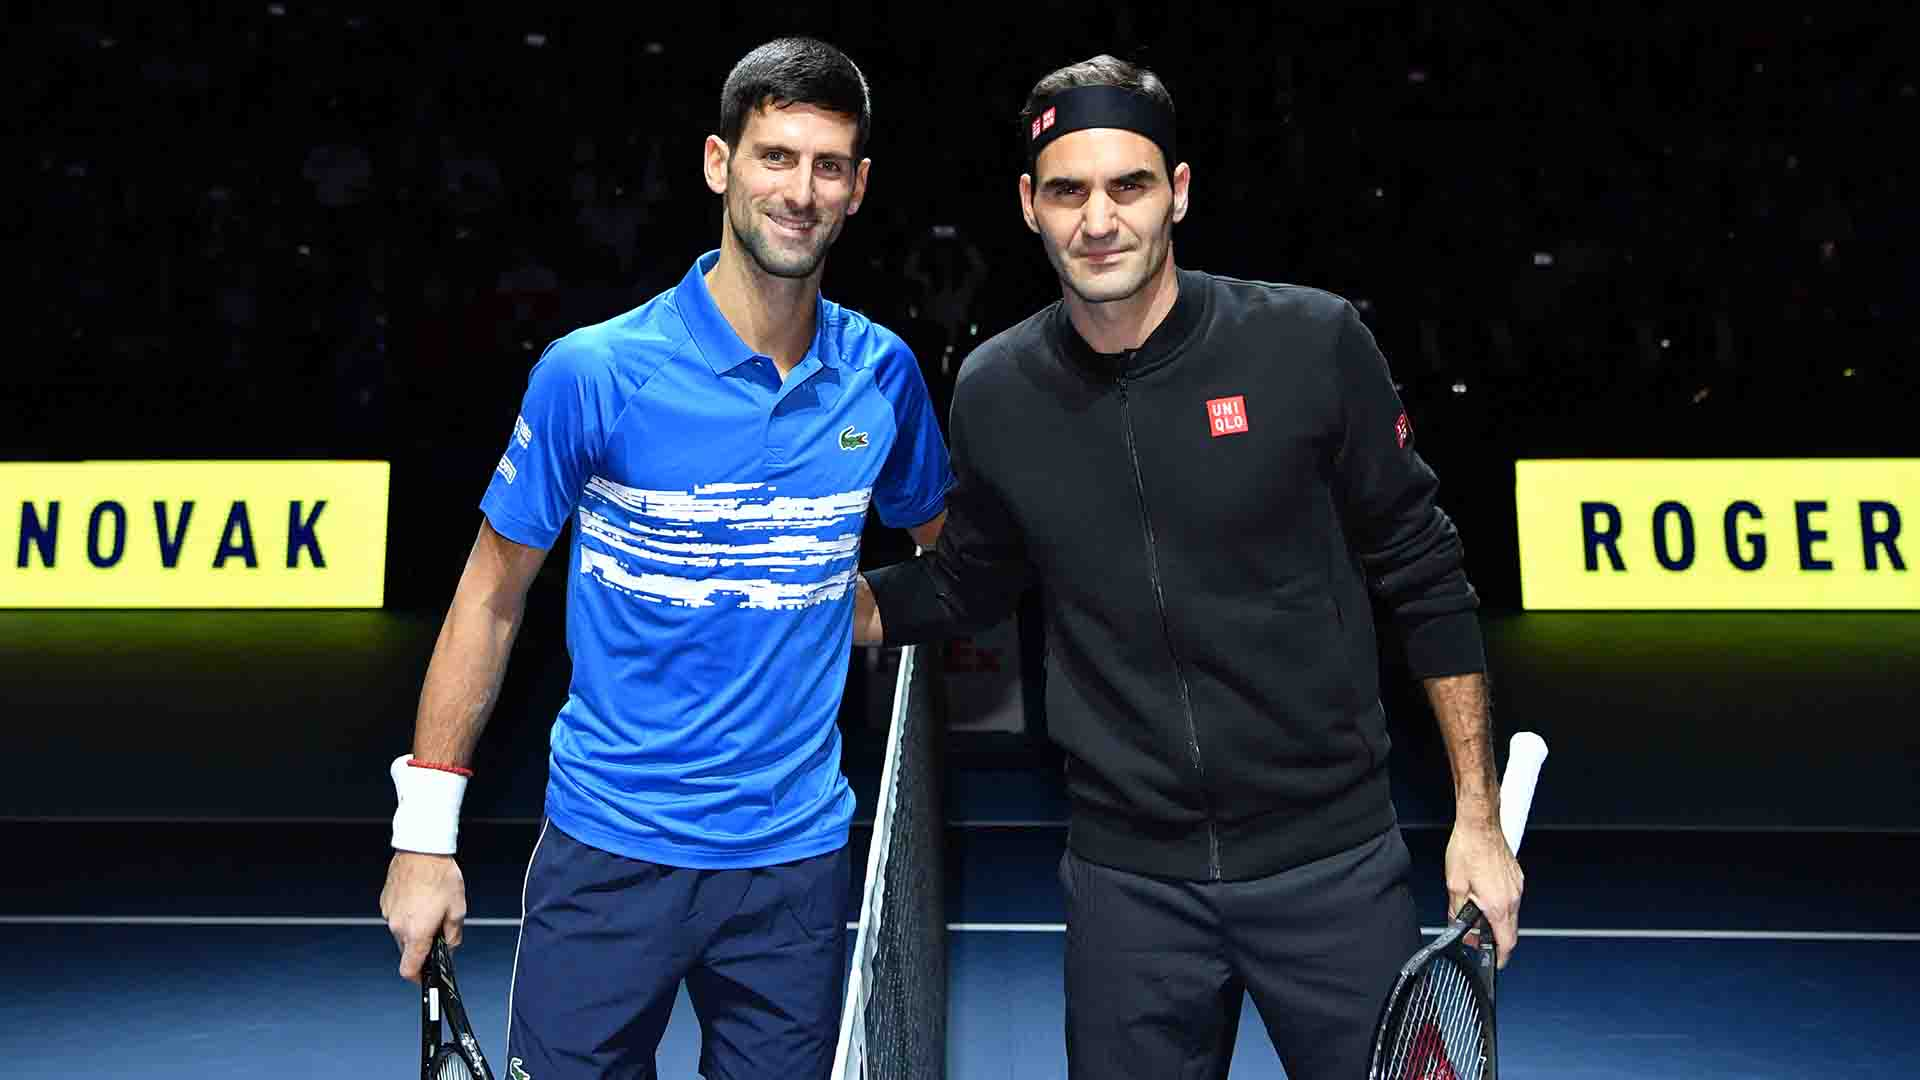 Novak Djokovic and Roger Federer are tied at 3-3 in Nitto ATP Finals encounters.